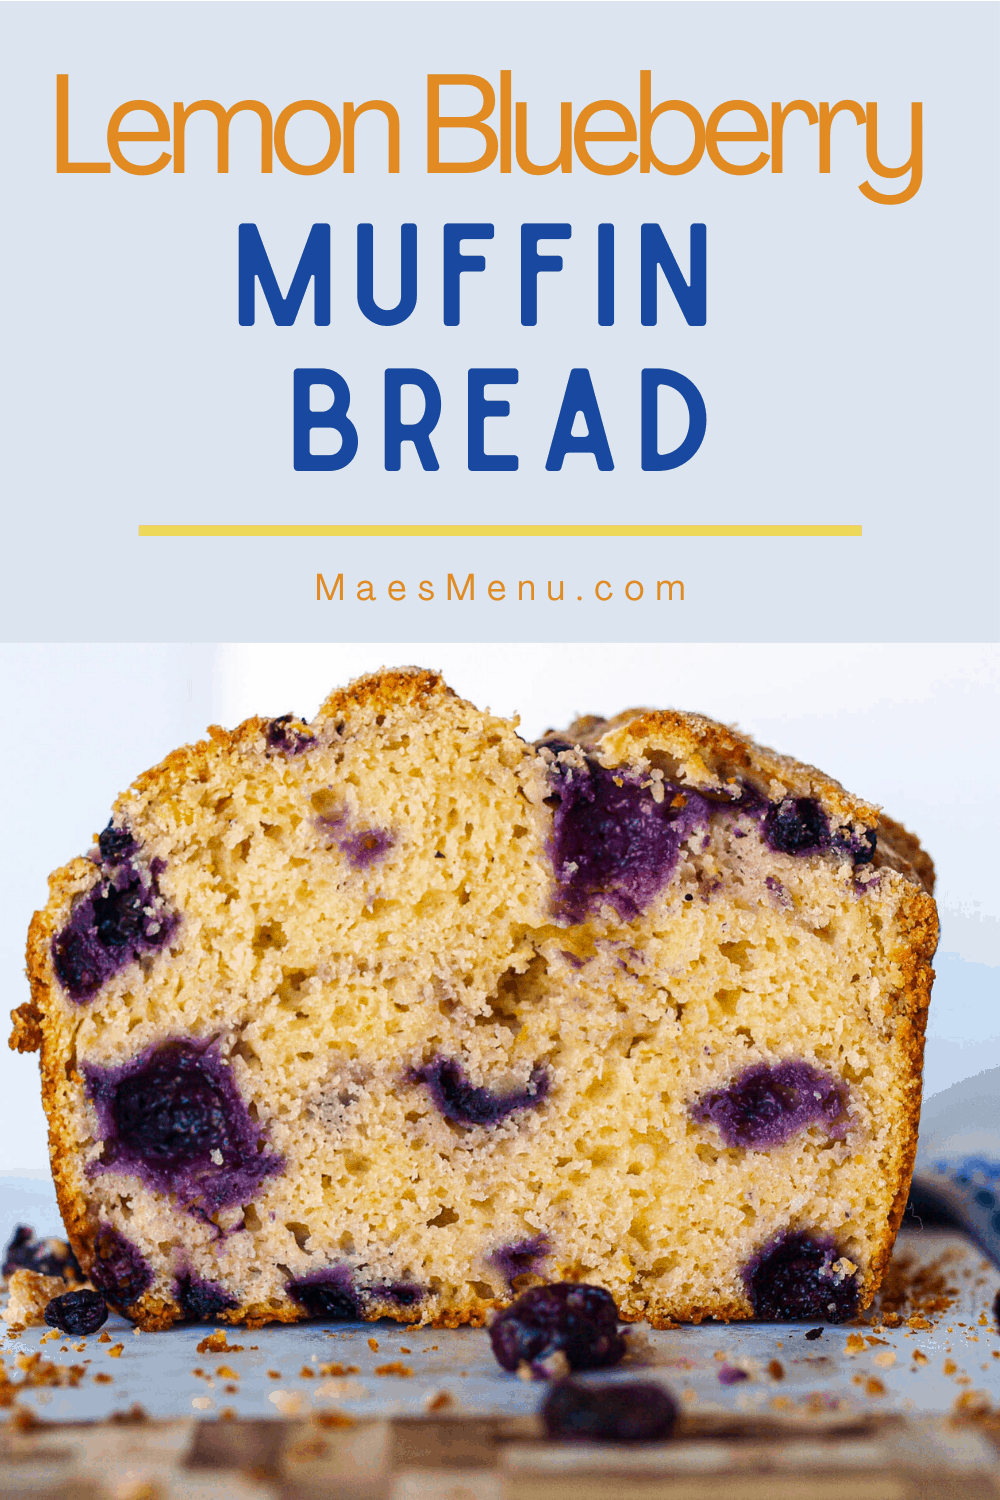 A pinterest pin for lemon blueberry muffin bread with a side shot of a loaf of the bread.